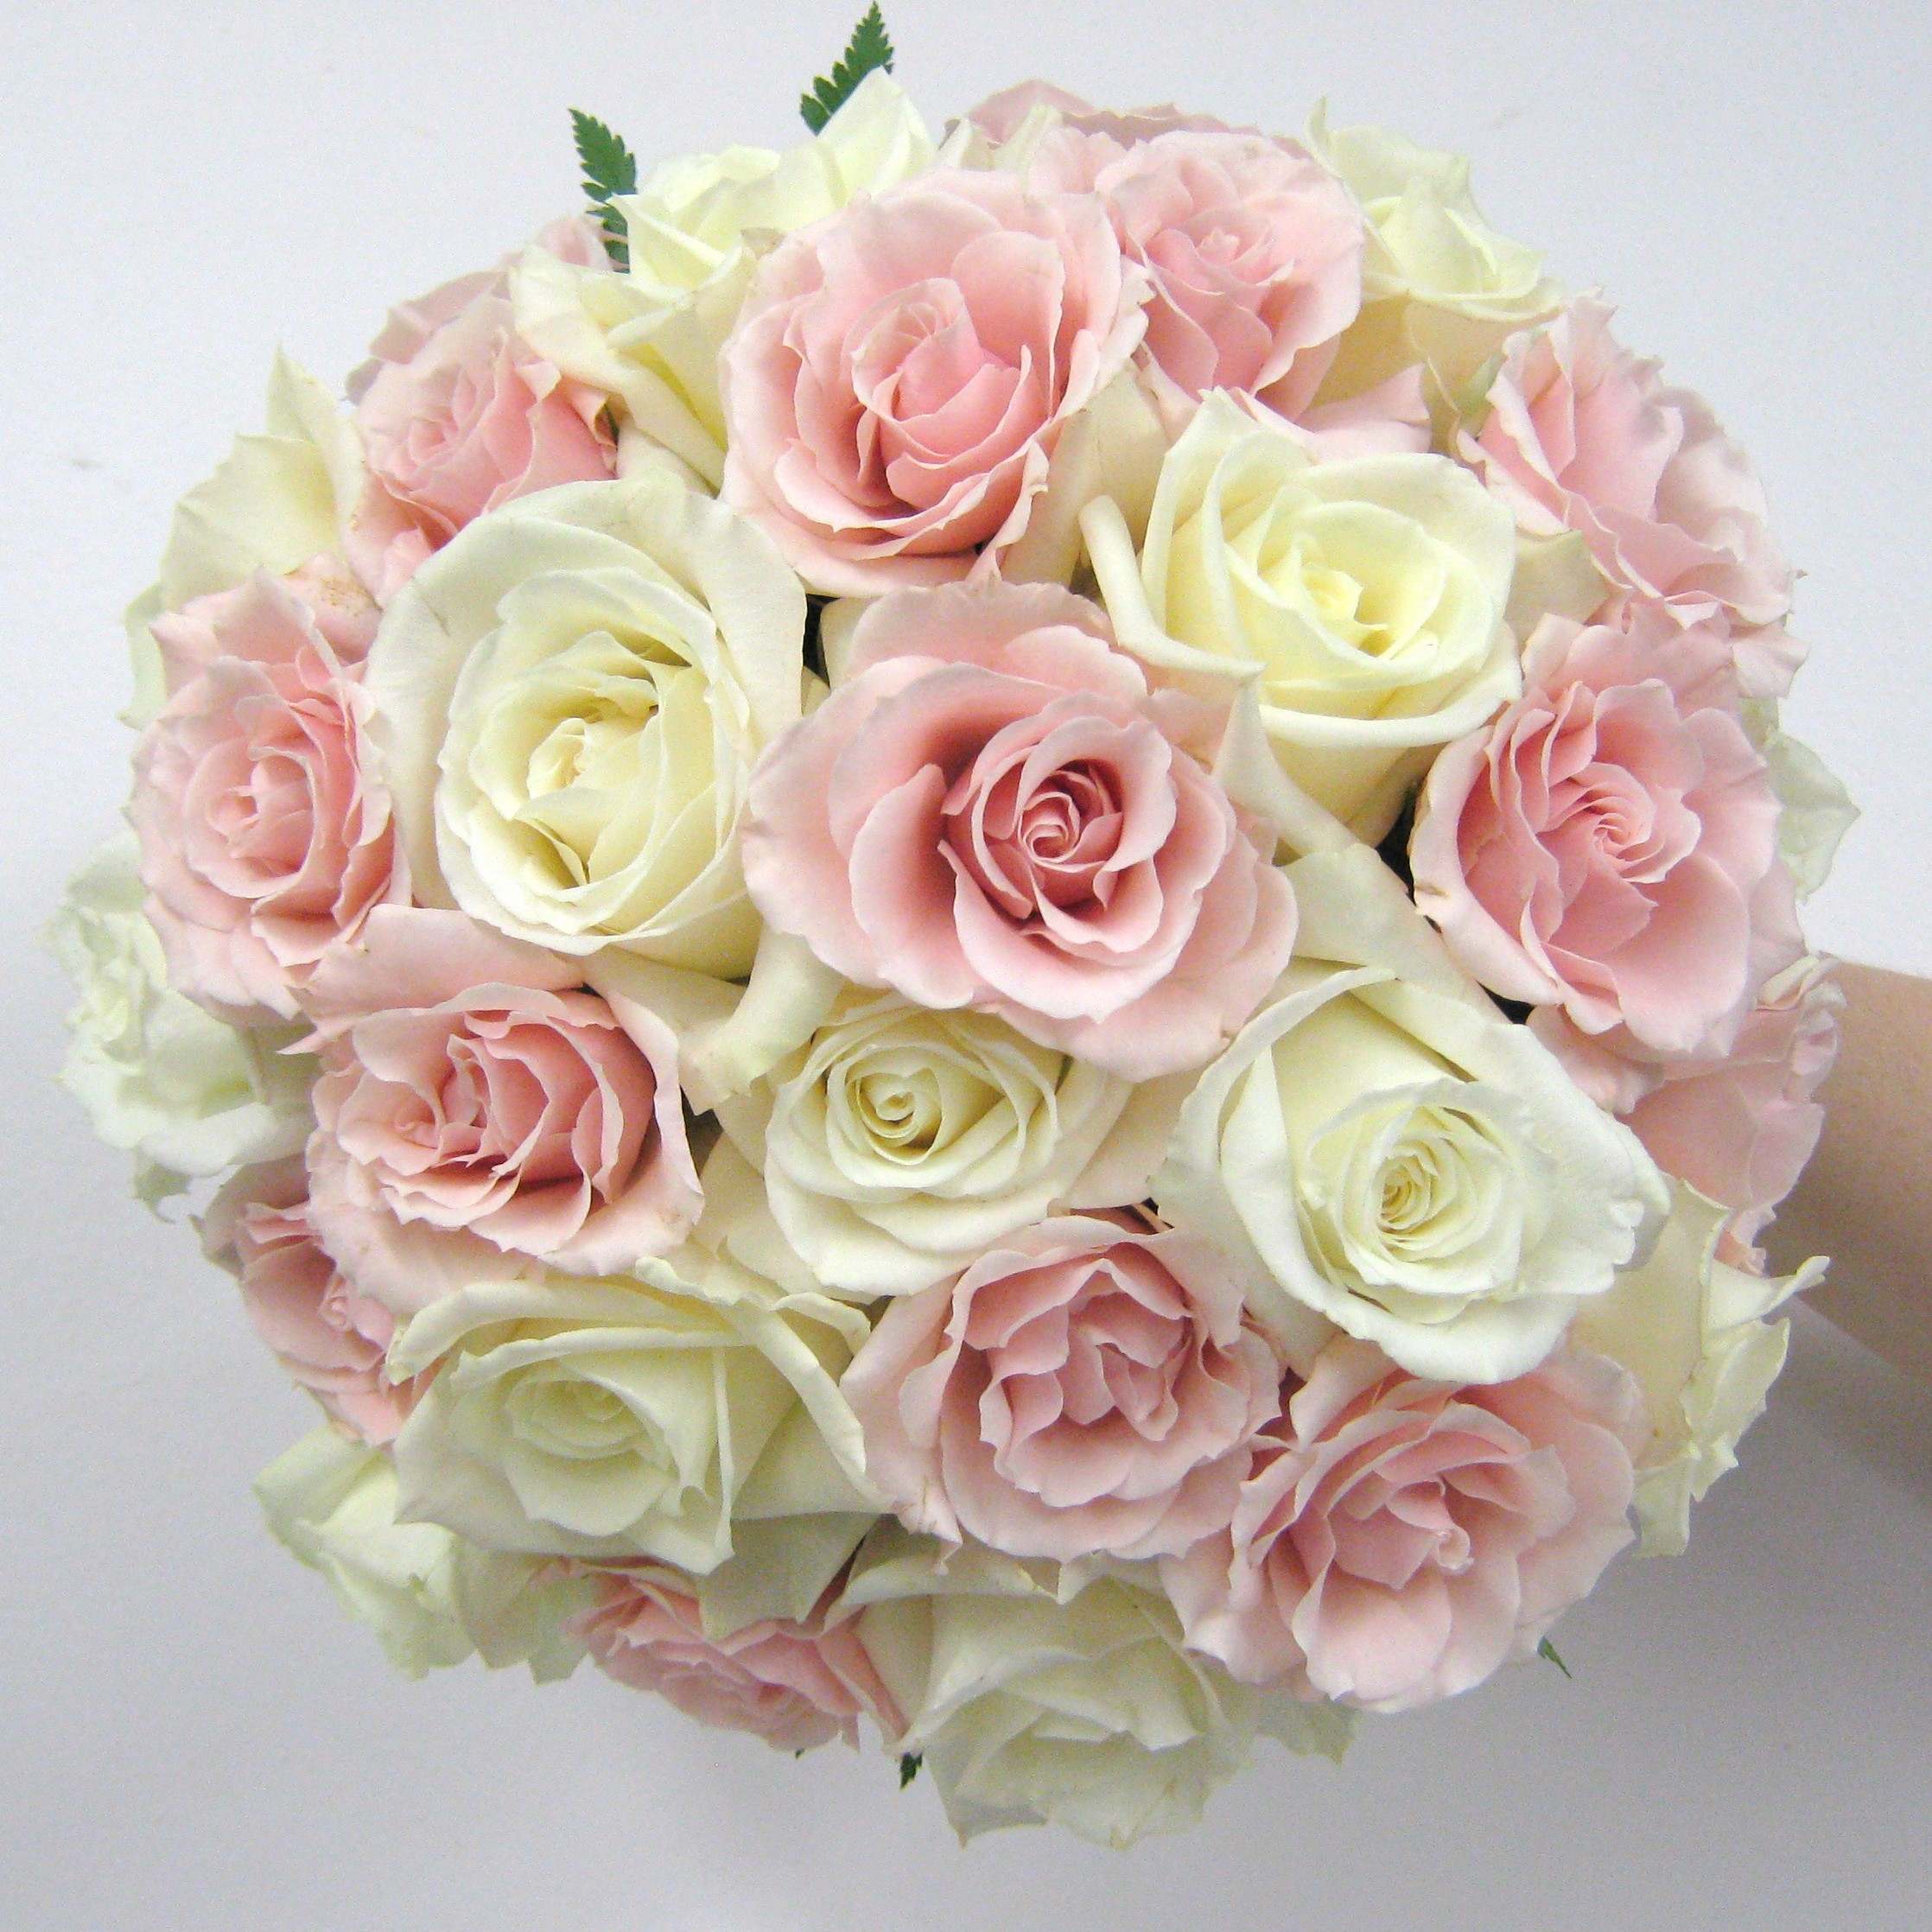 White Rose Bridal Bouquet | Buffalo Wedding & Event Flowers by ...